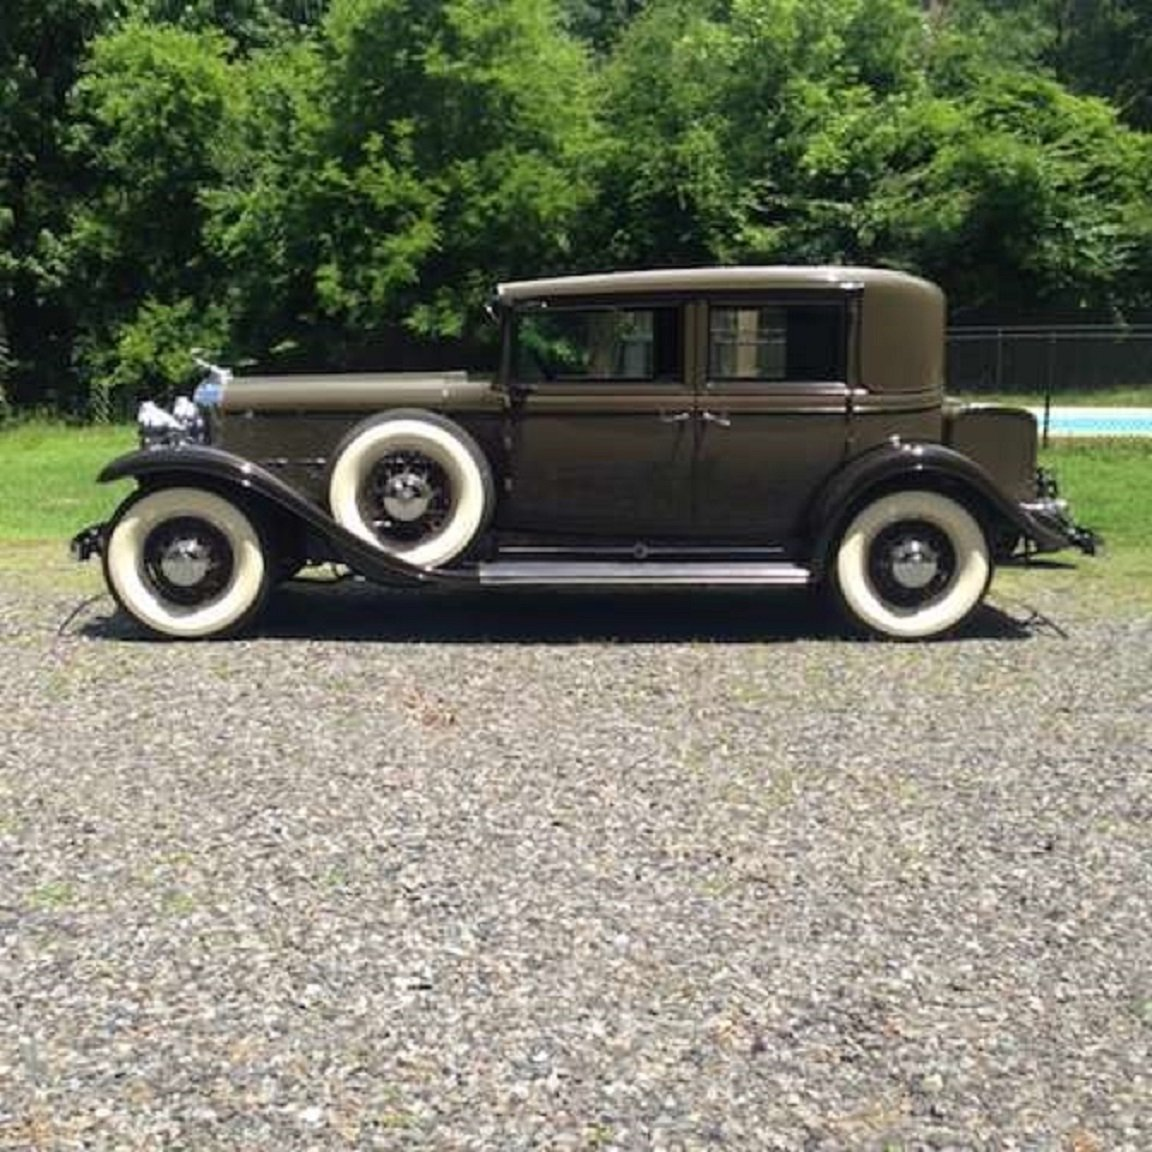 1931 Cadillac 370A 4DR Sedan For Sale (picture 2 of 6)